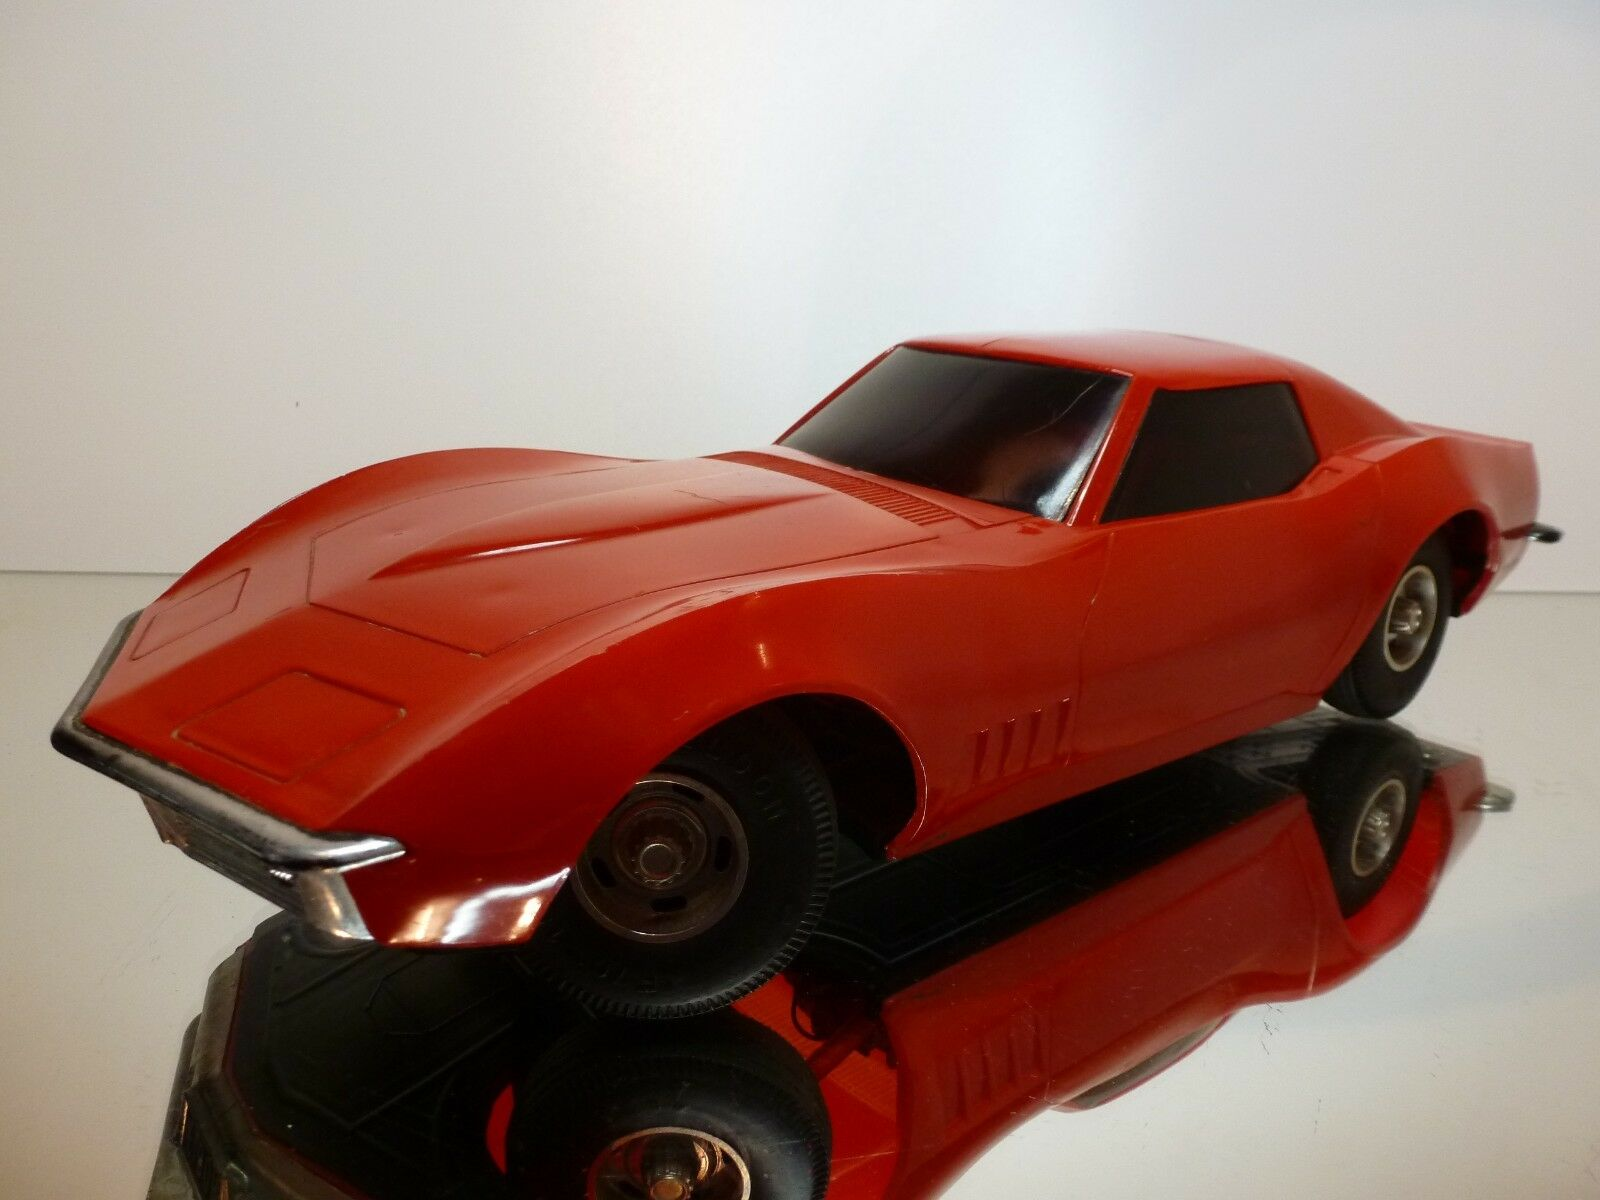 ELDON JAPAN PLASTIC CHEVROLET CORVETTE - RED L35.0cm L35.0cm L35.0cm BATTERIE - GOOD CONDITION 4f486d